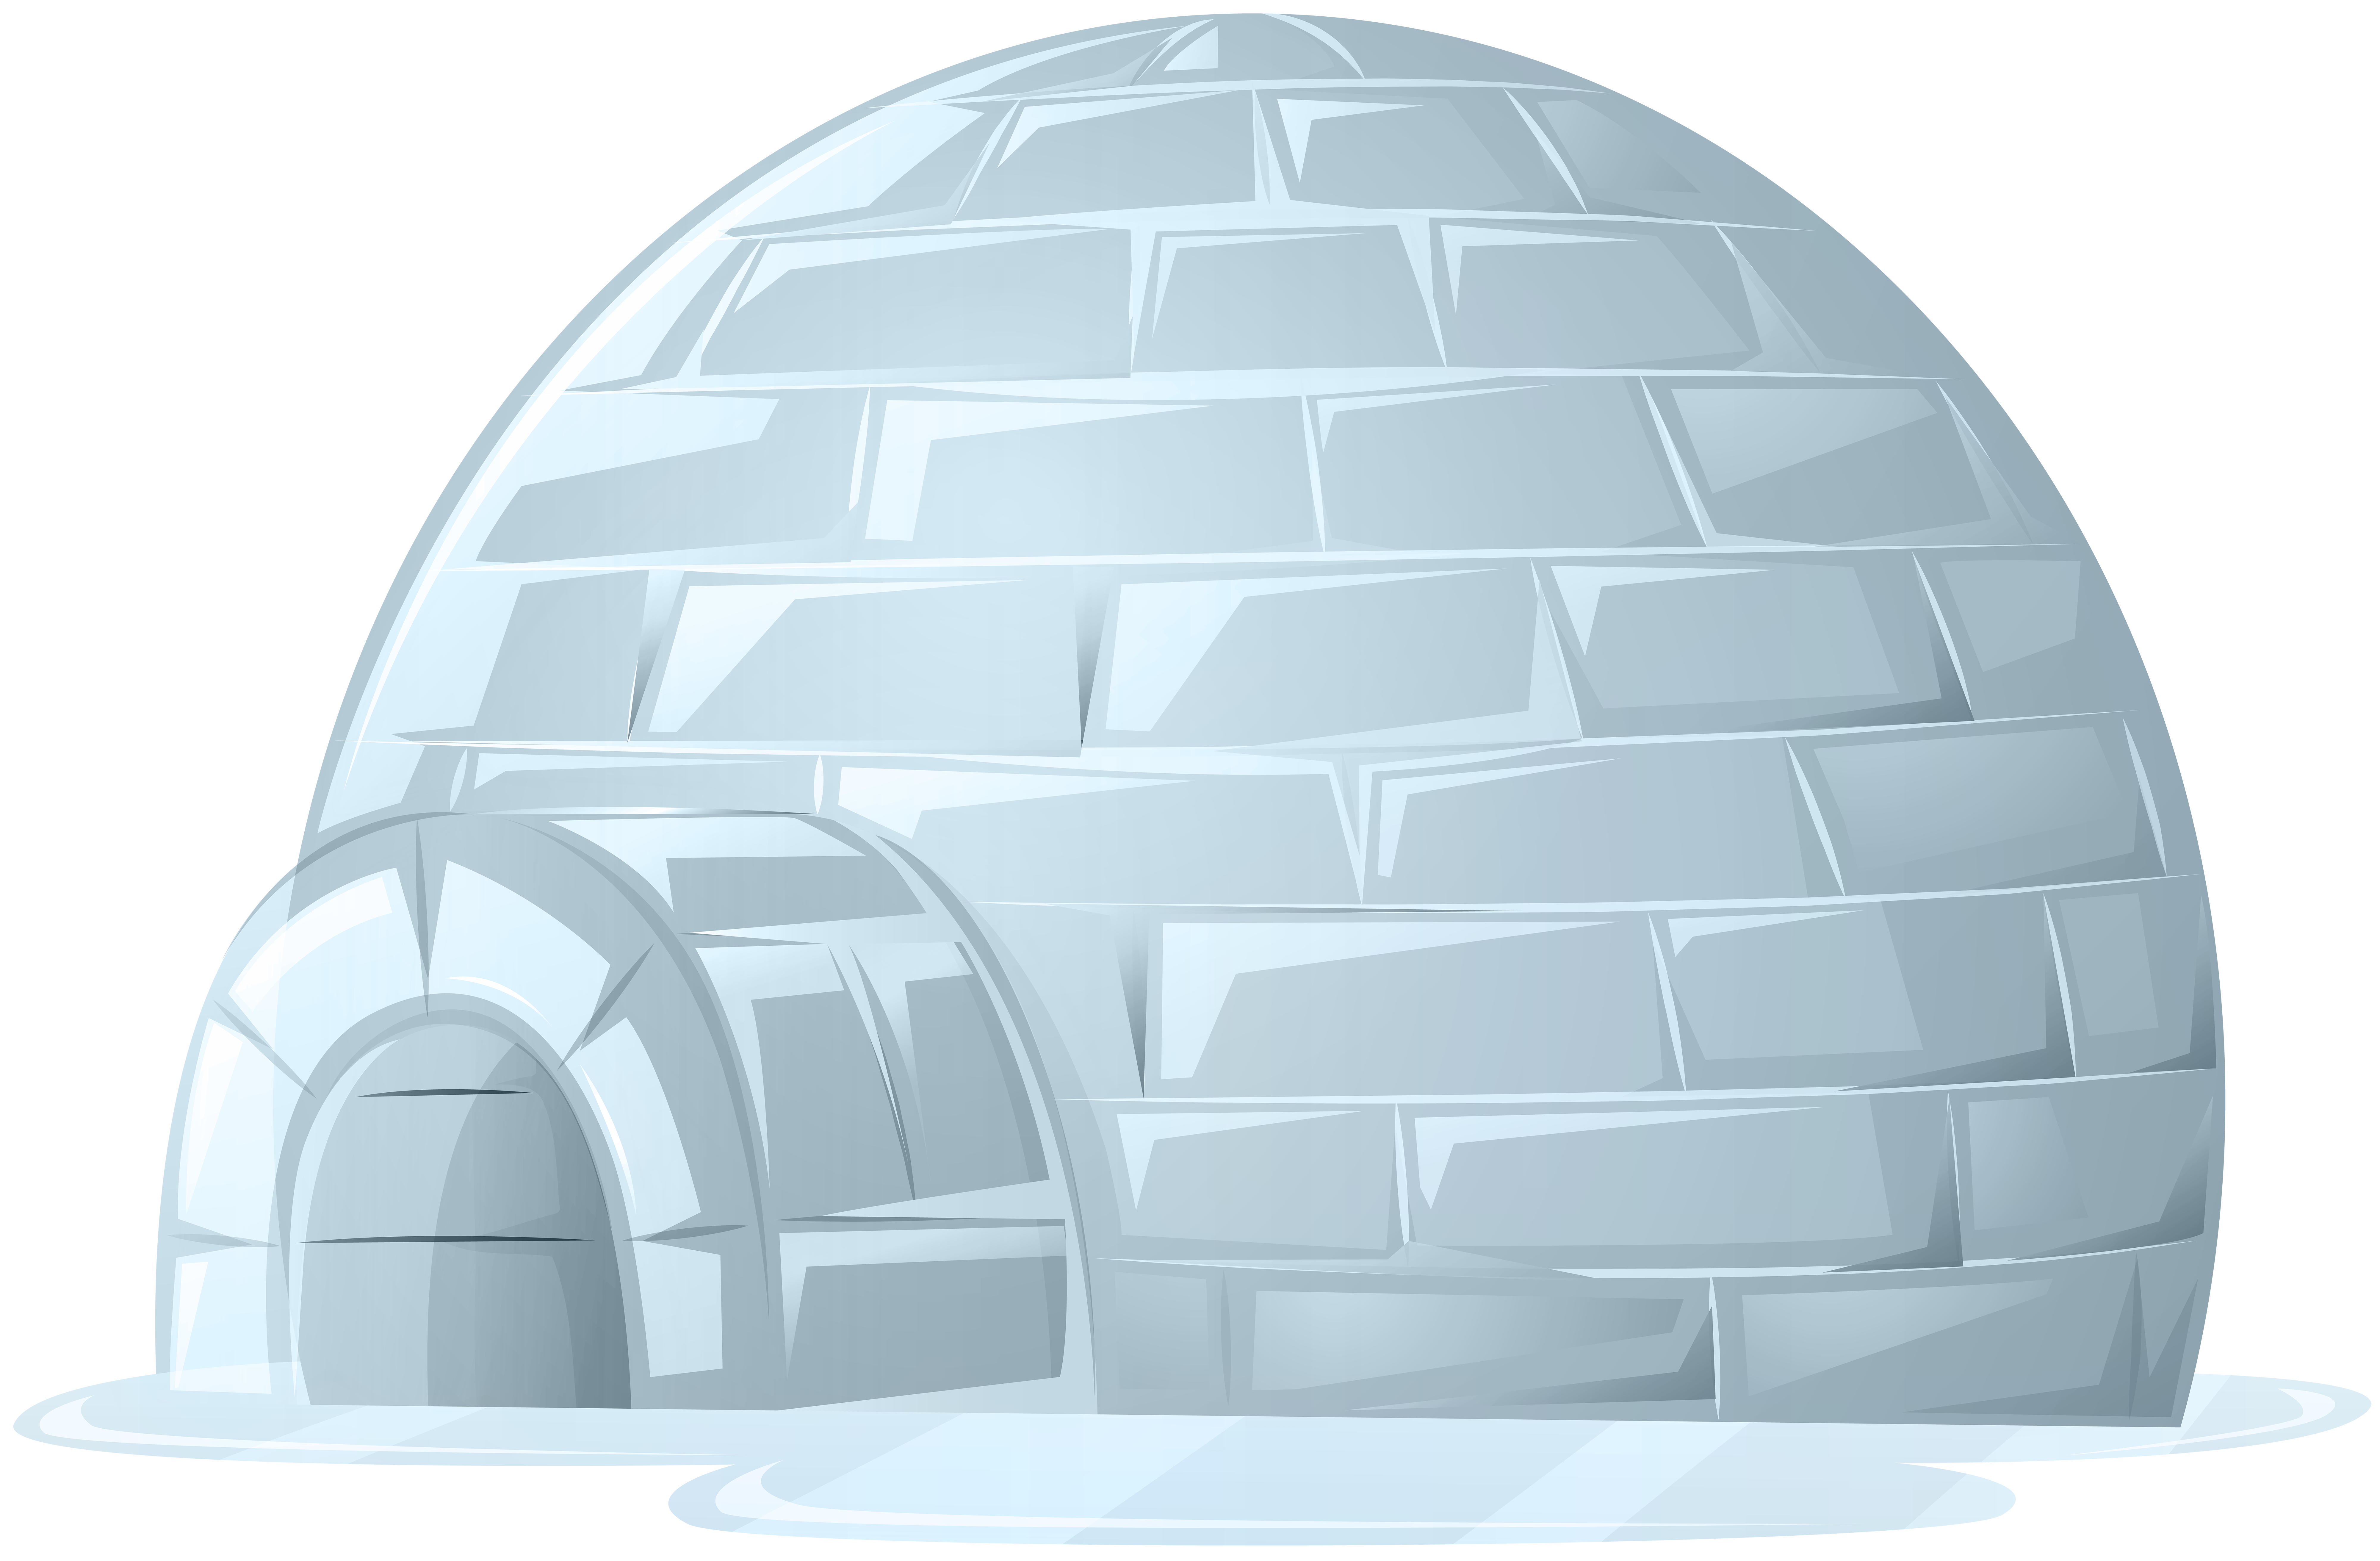 Icehouse transparent image gallery. Igloo clipart ice house